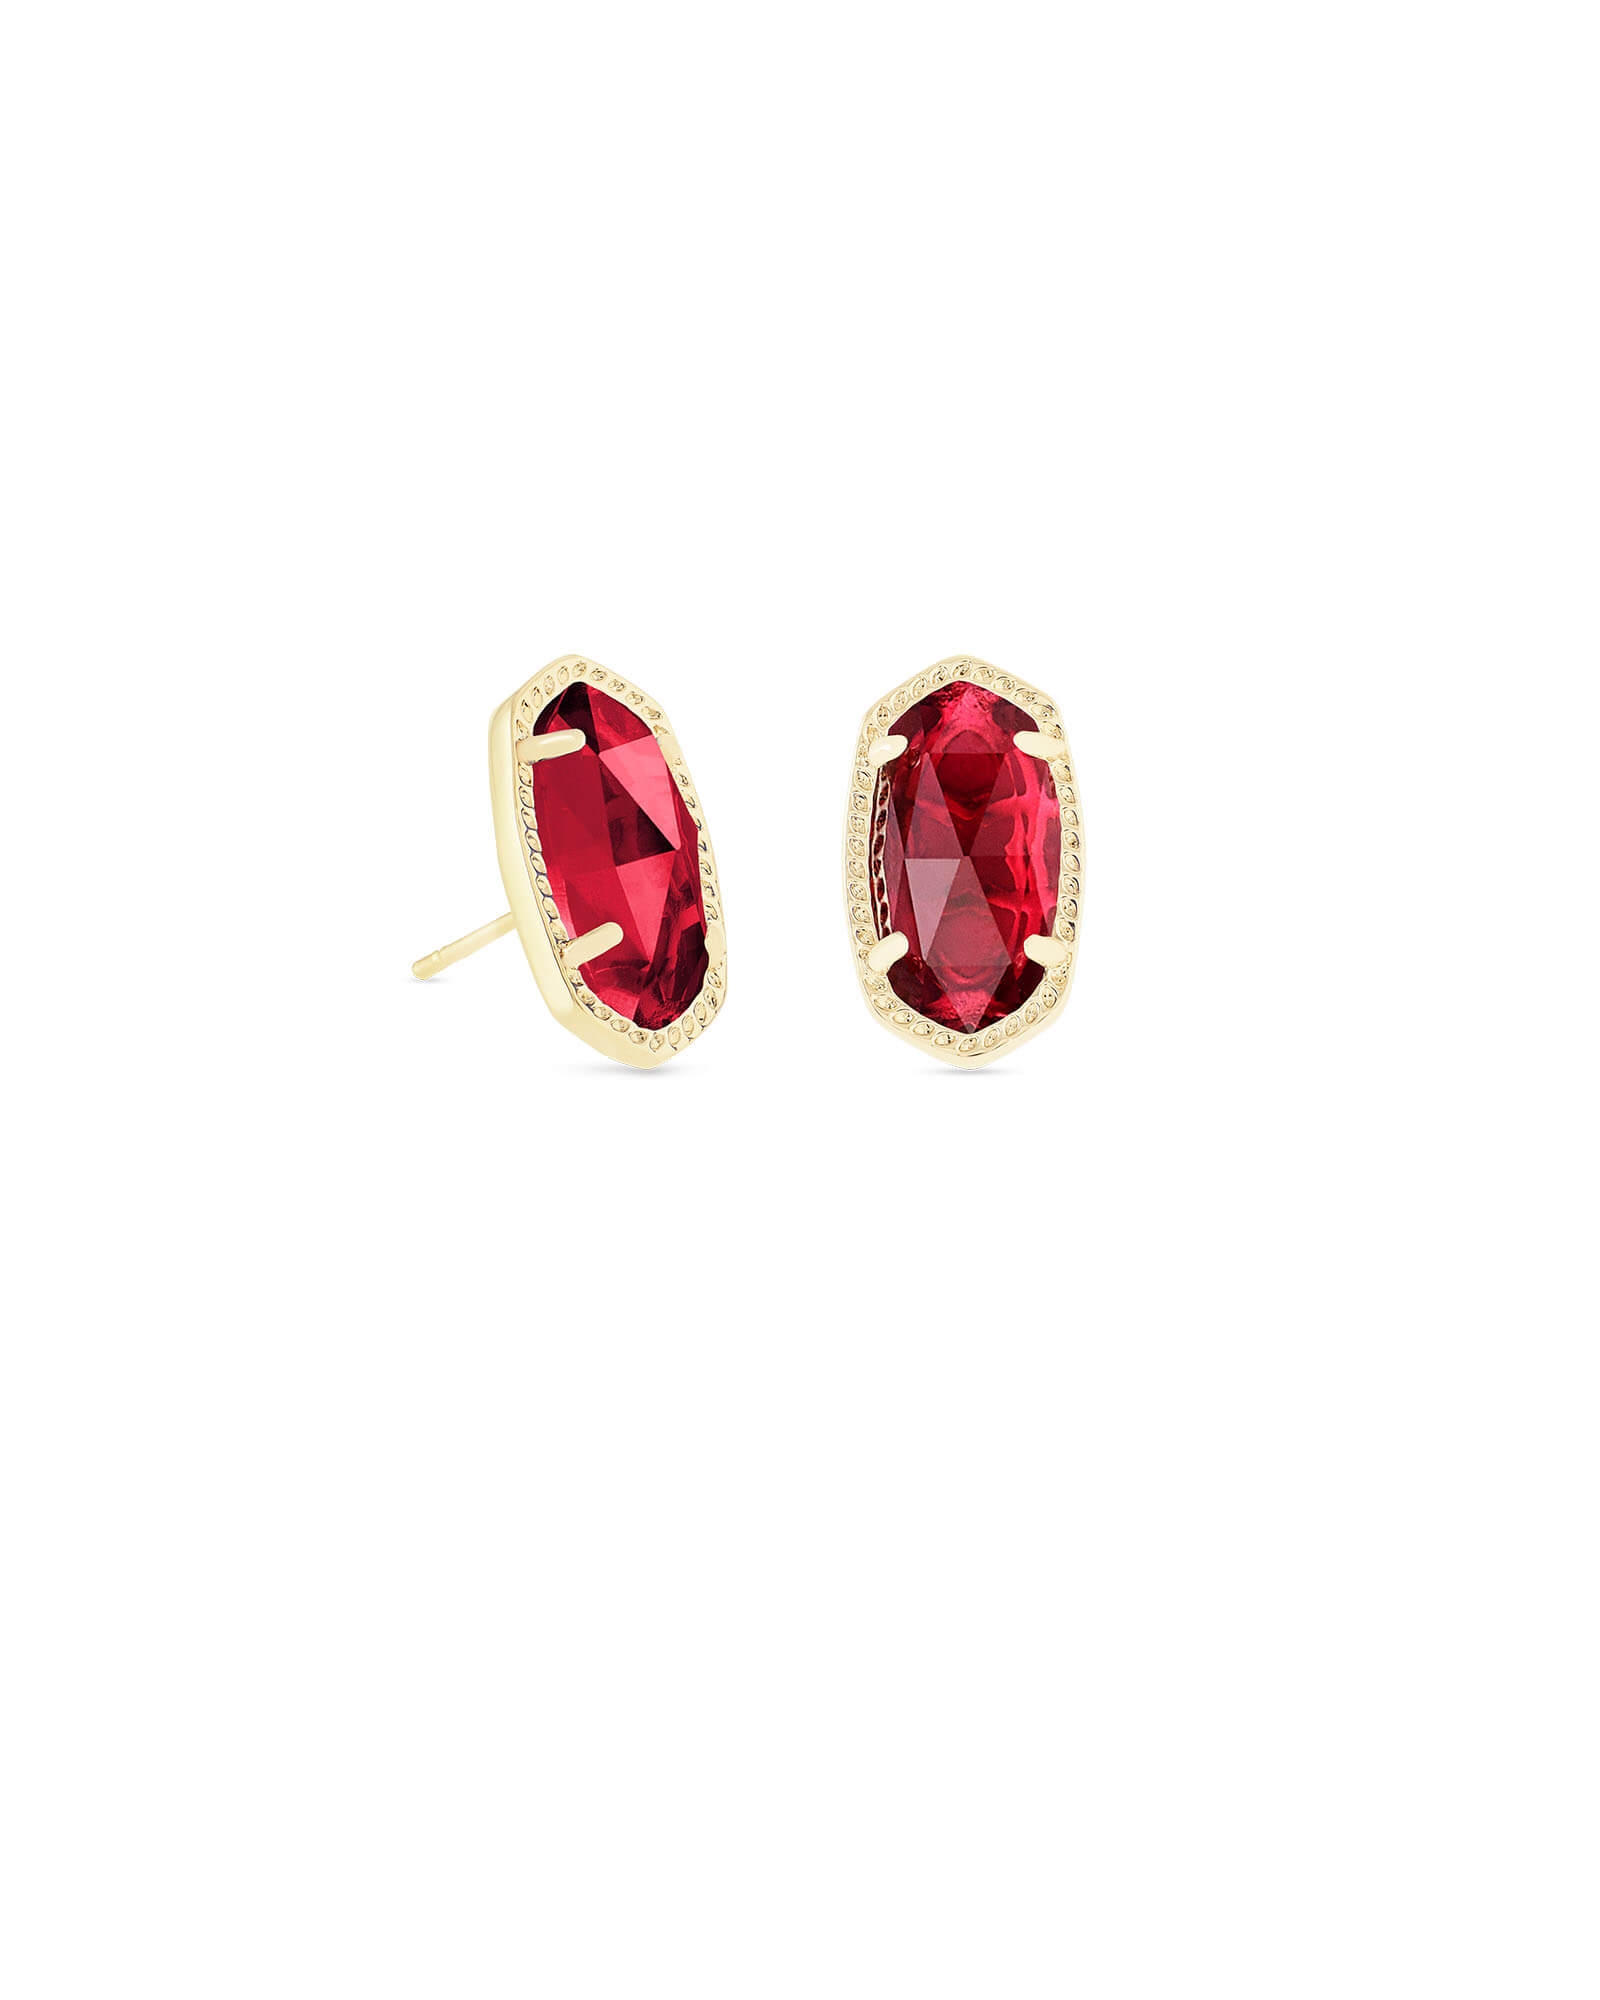 Ellie Gold Stud Earrings in Berry